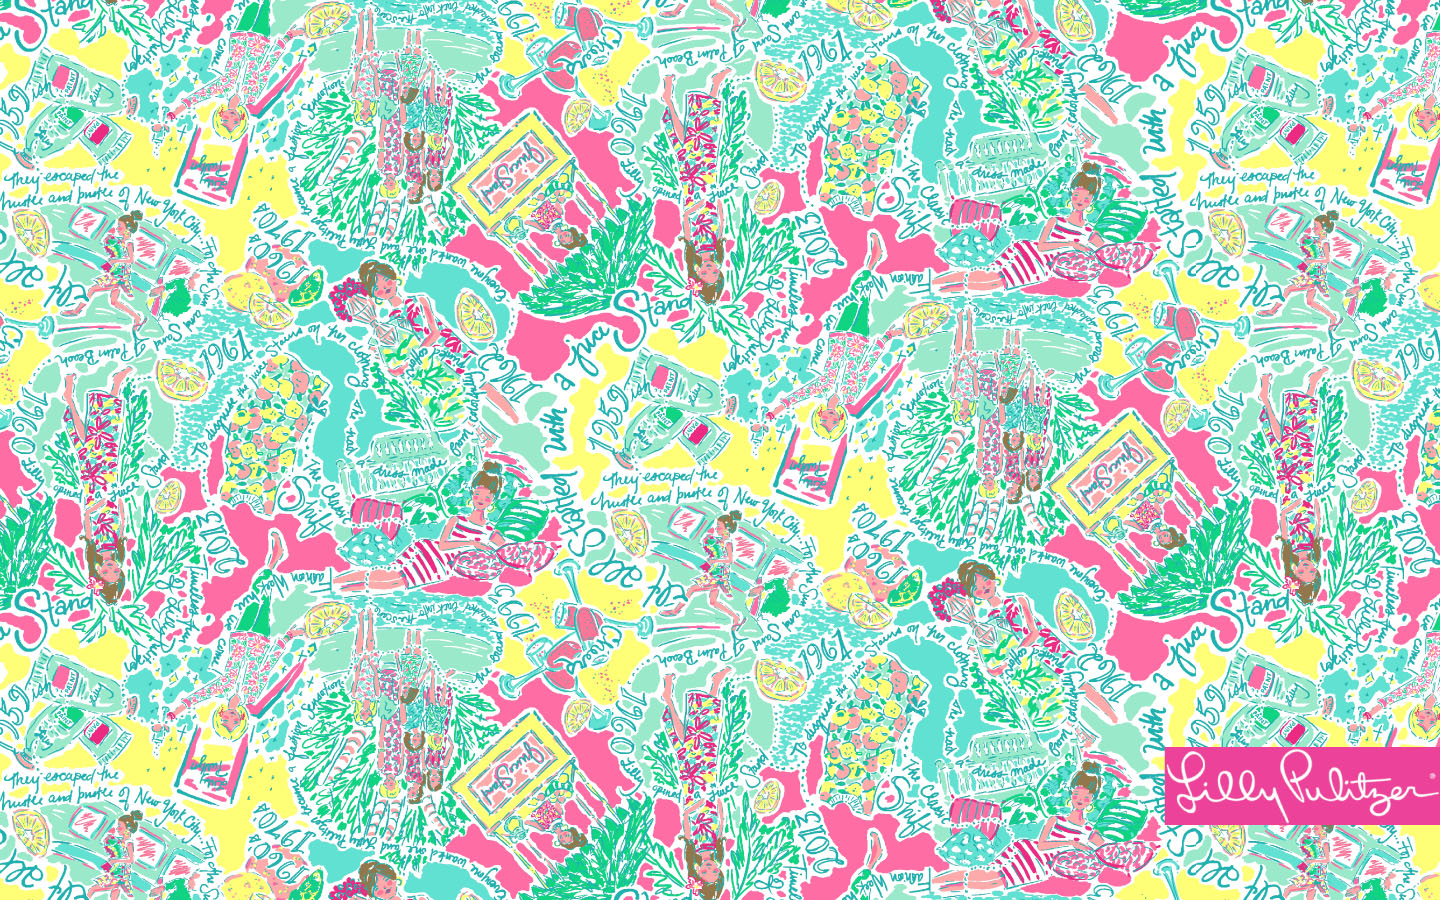 Lilly Pulitzer 12549 1440x900 px